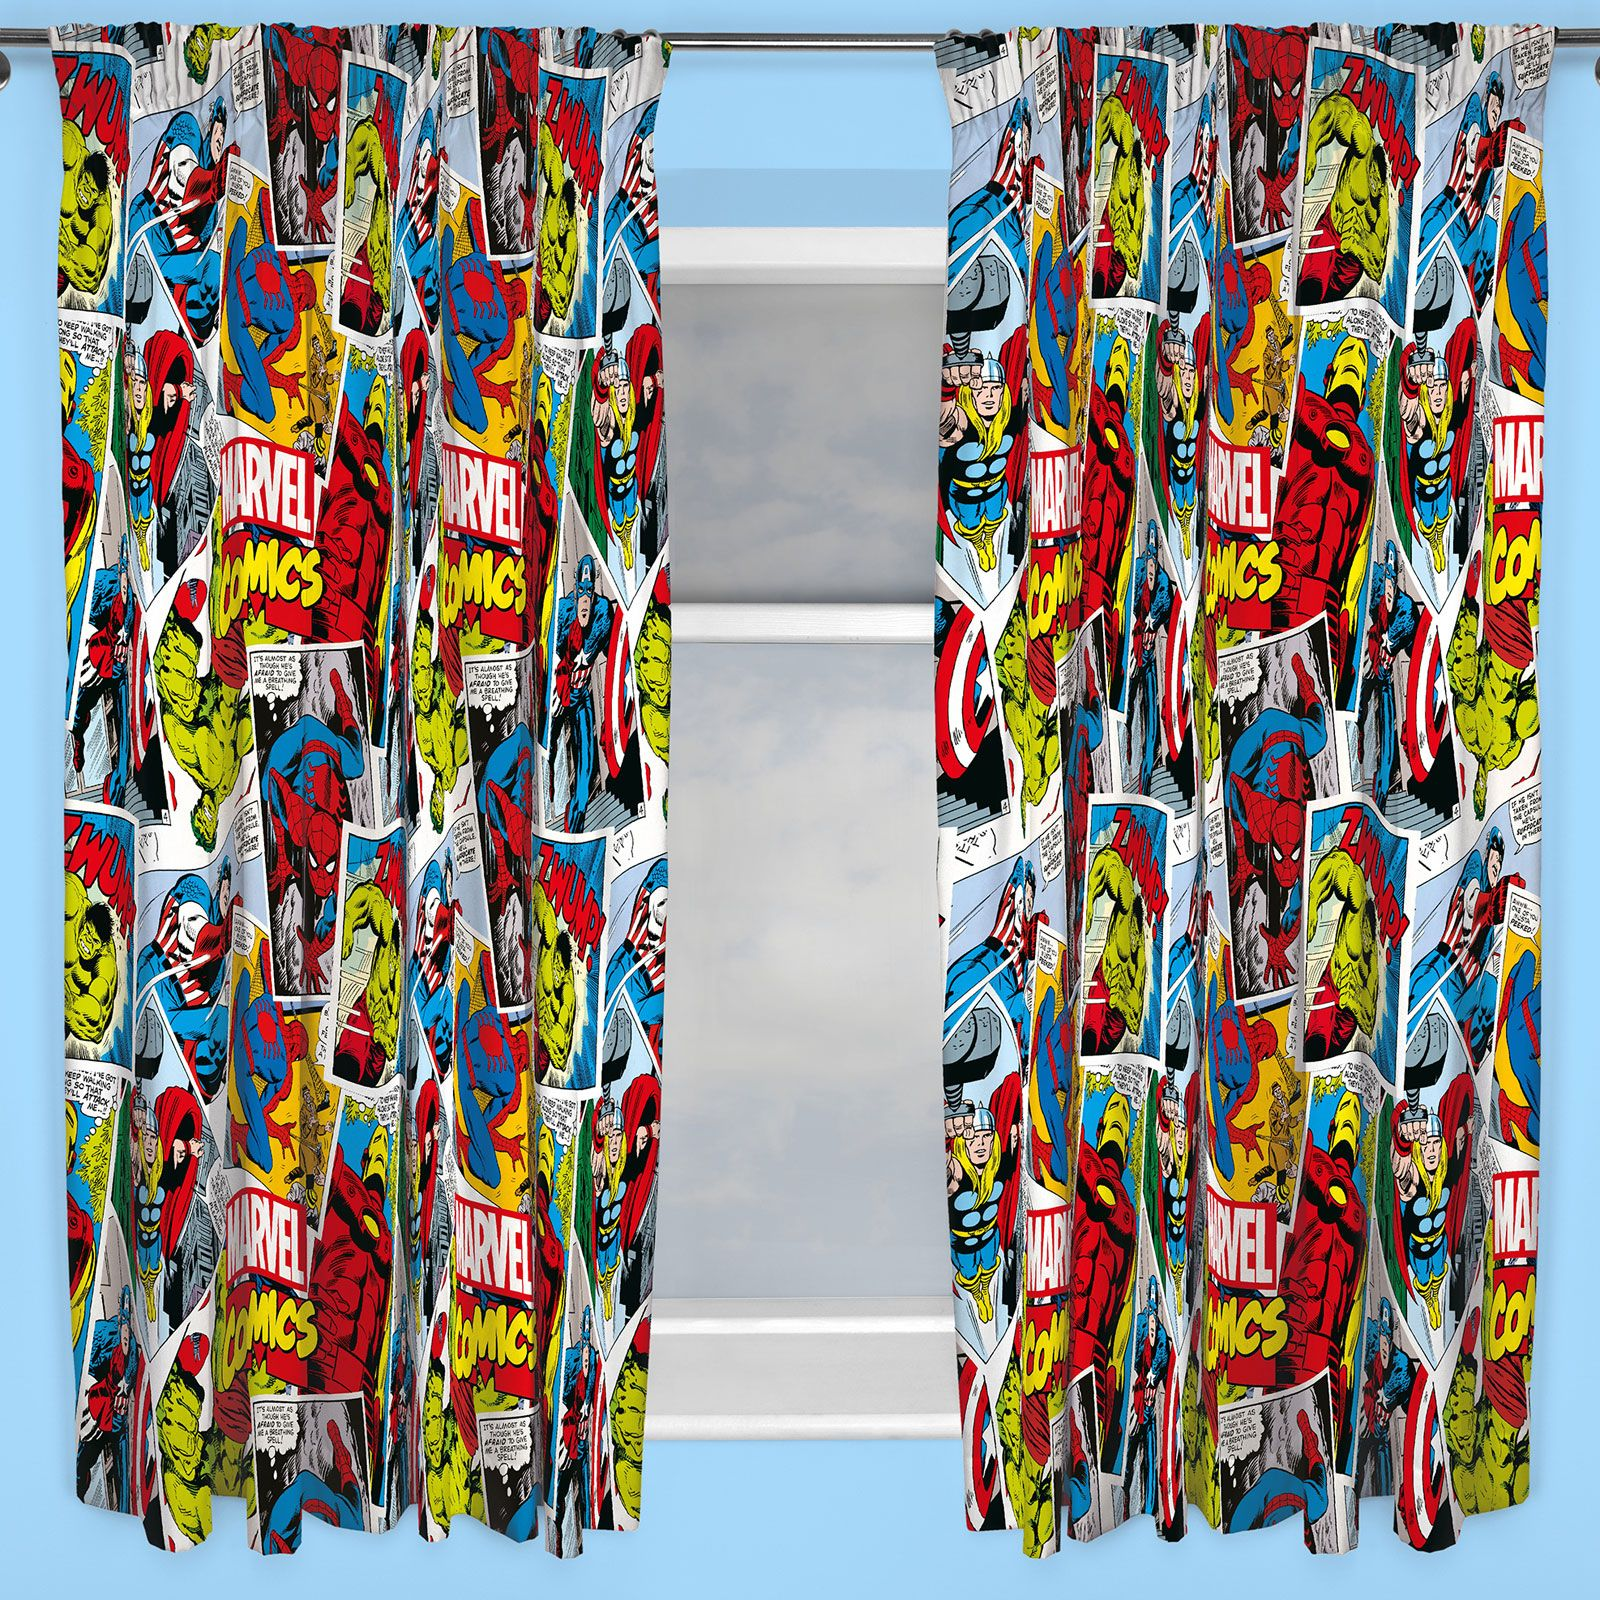 BOYS BEDROOM CHARACTER CURTAINS MARVEL STAR WARS PAW